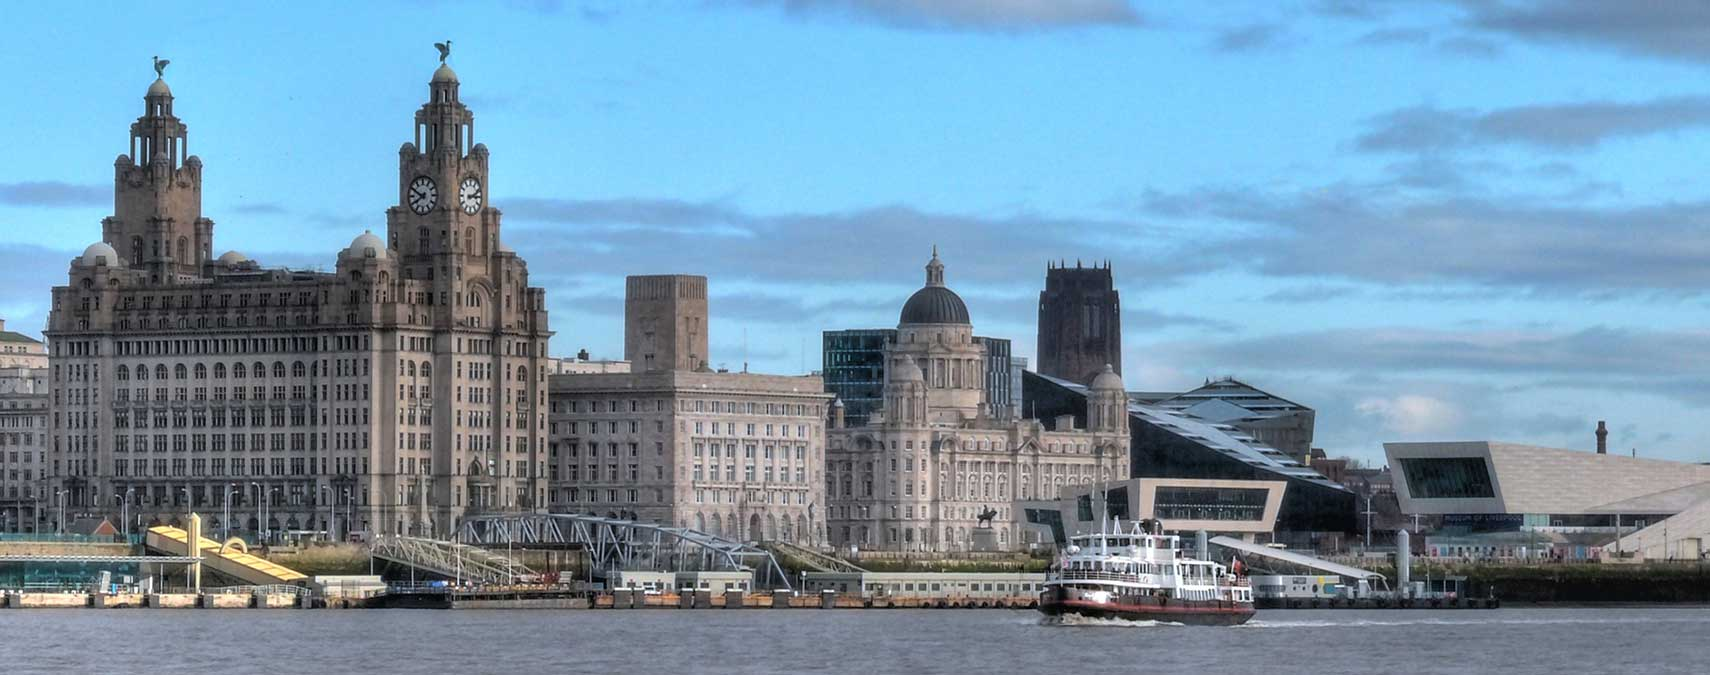 Pier Head Landing Stage, Liverpool, North West England, UK